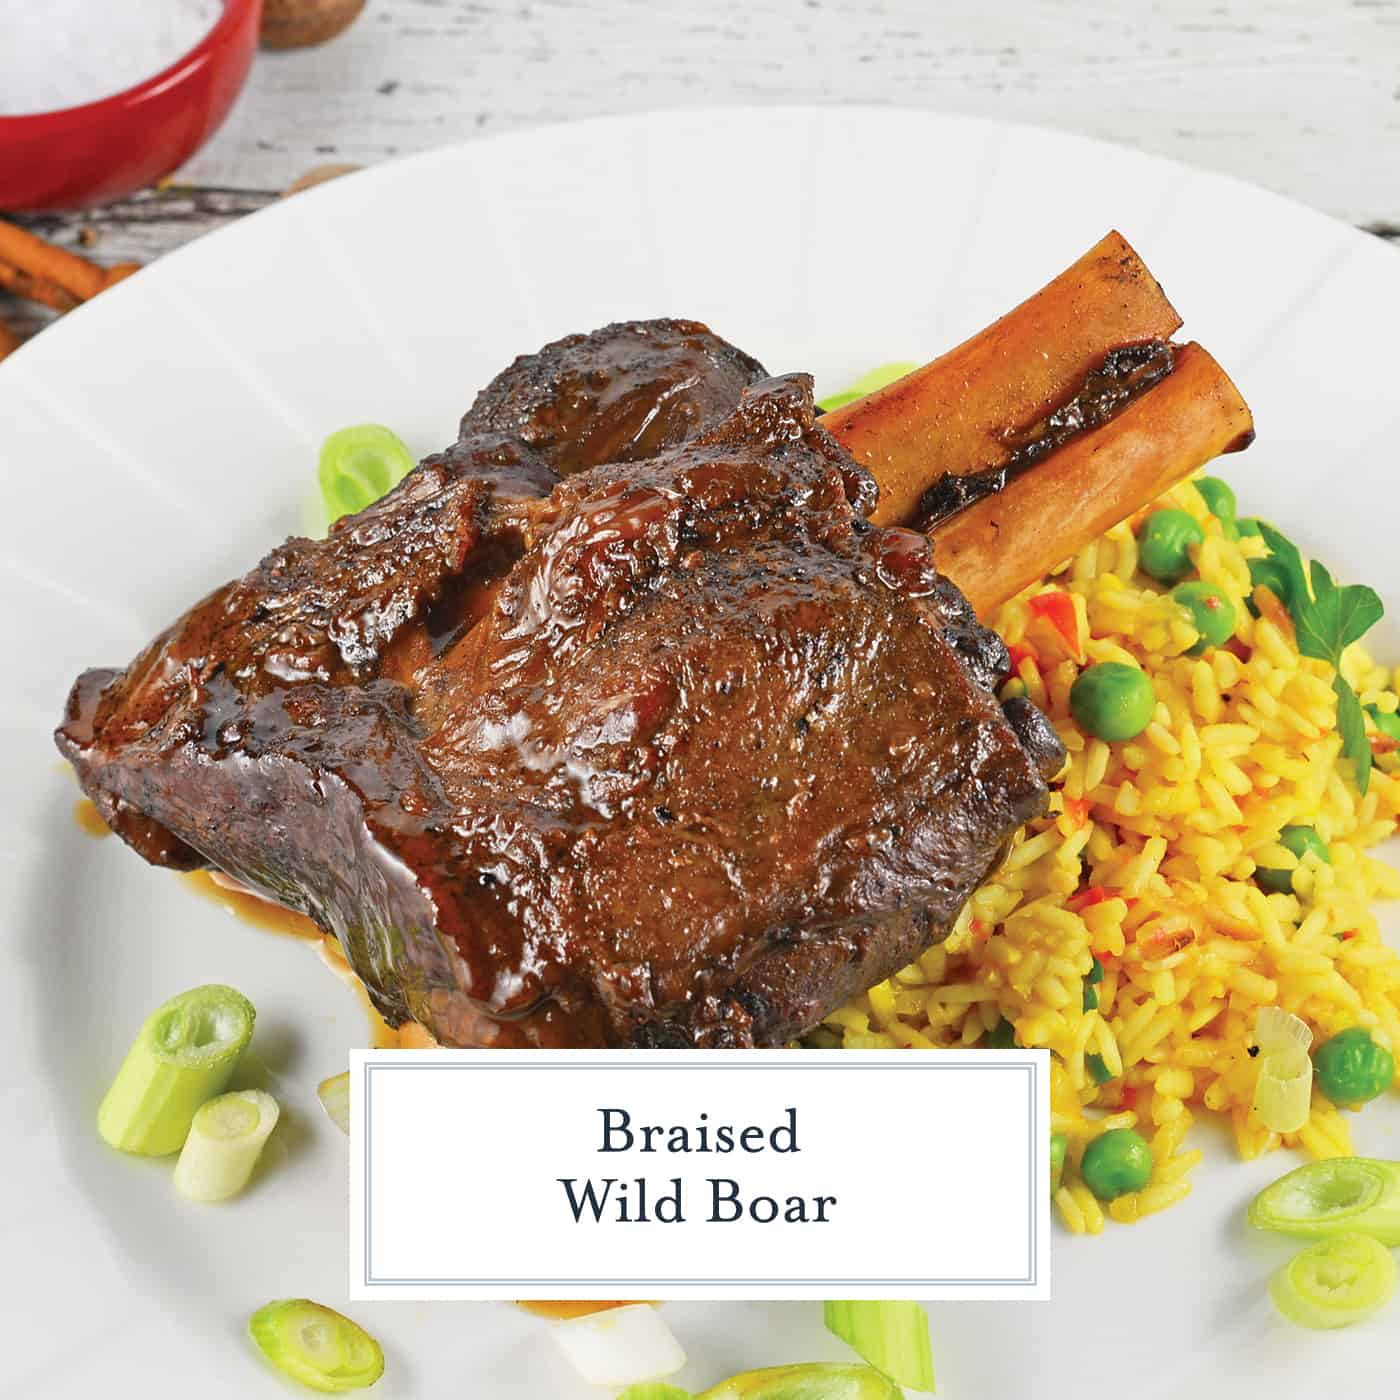 Braised Wild Boar Shanks are a sophisticated and exotic meal, ideal for special occasions and dinner parties. Lean and healthy with loads of rich flavor. #wildboar #braisedwildboar www.savoryexperiments.com